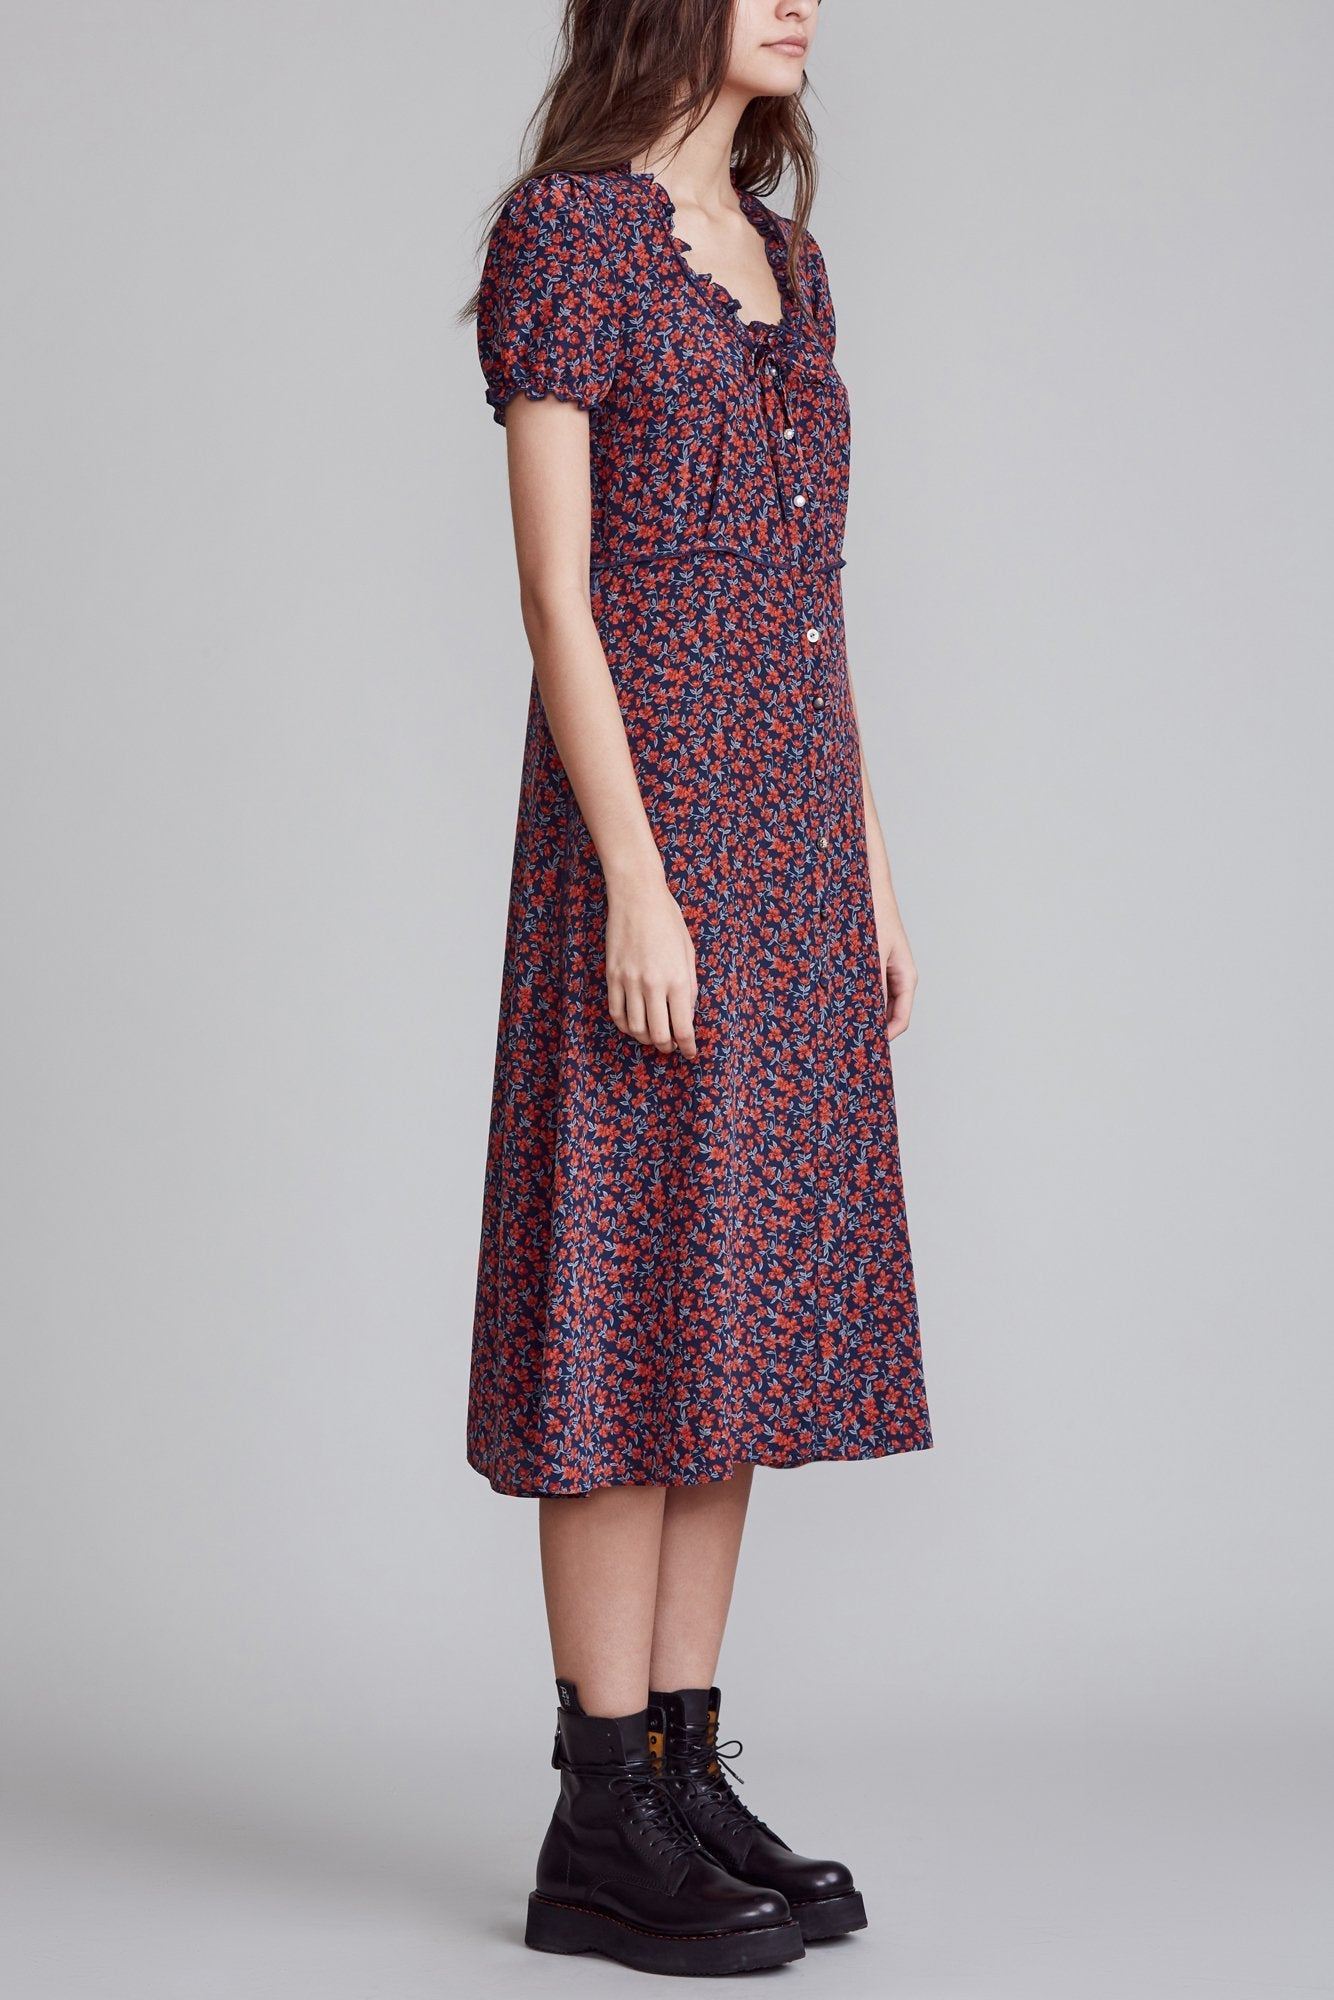 Front Button-Up Midi - Navy and Red Floral